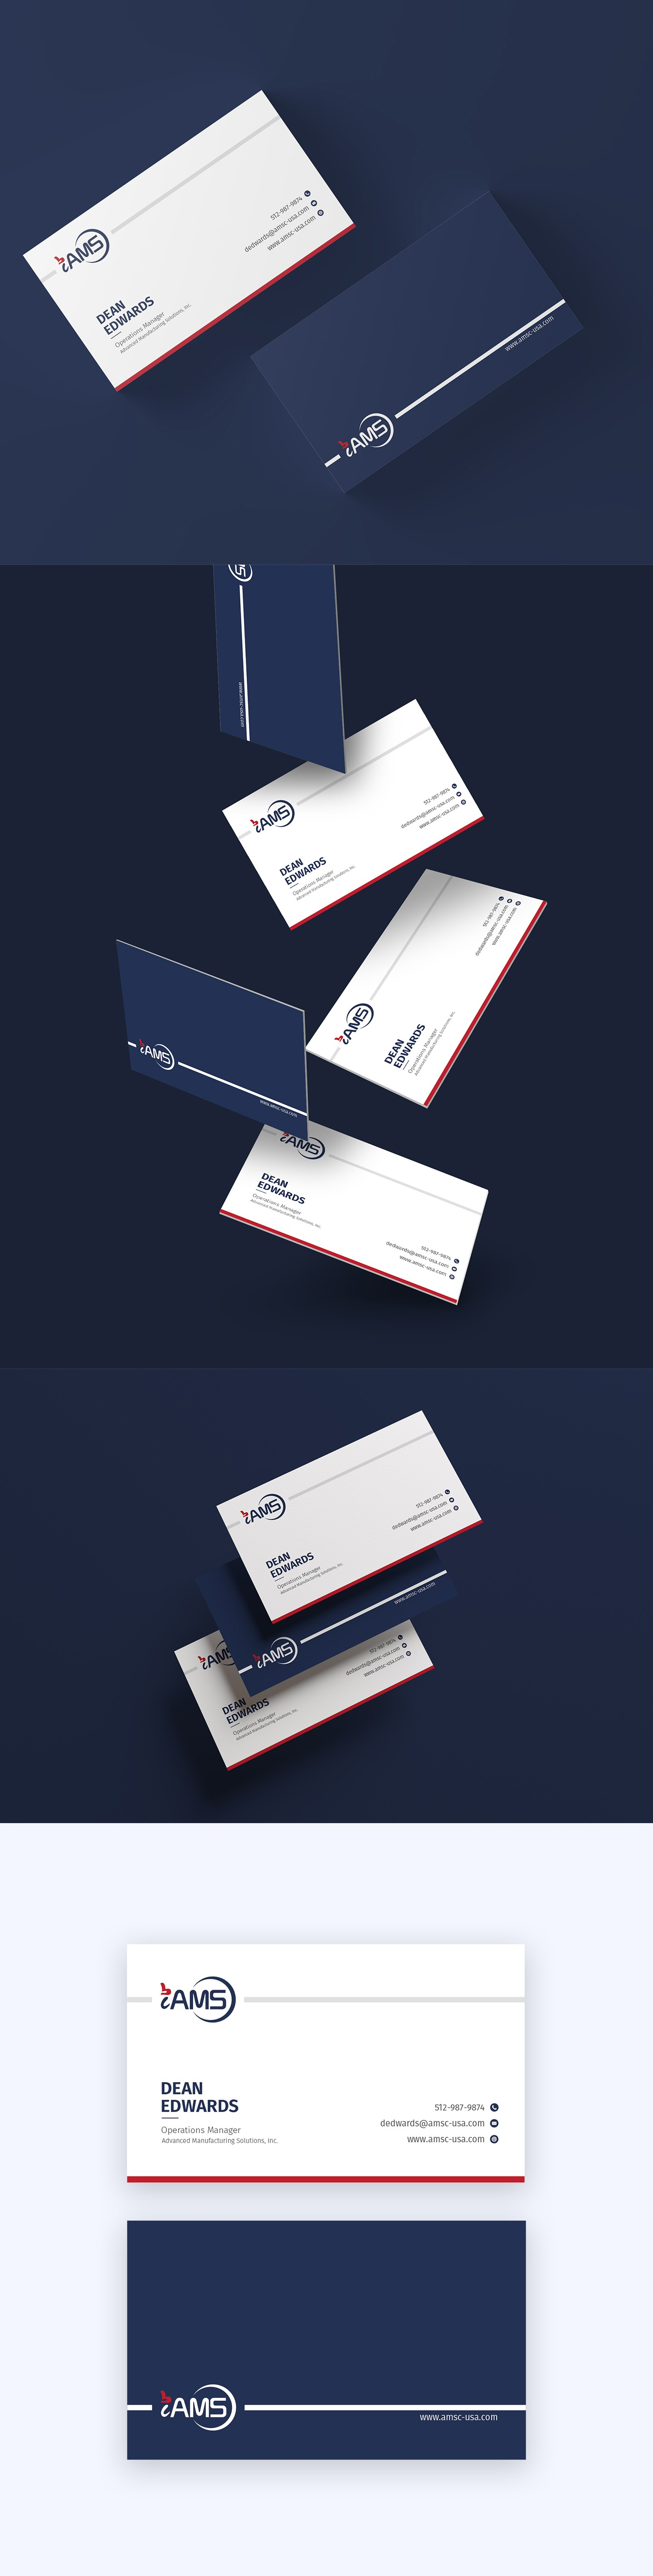 business card for manufacturing and logisitics company